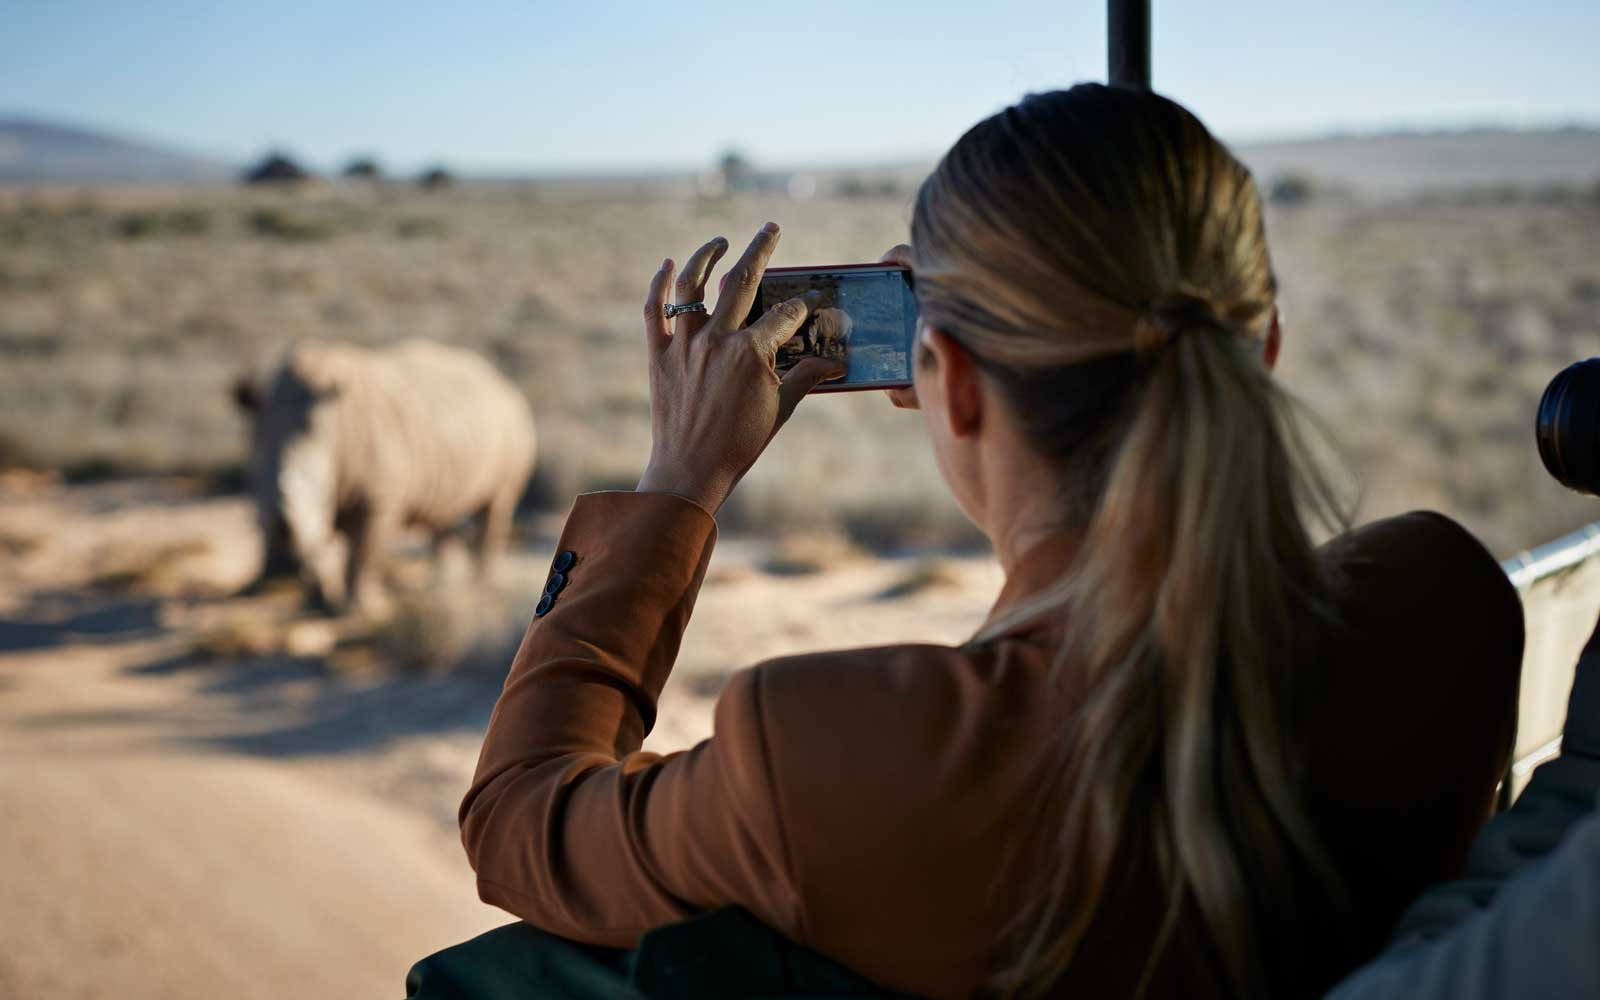 Woman taking photos on safari